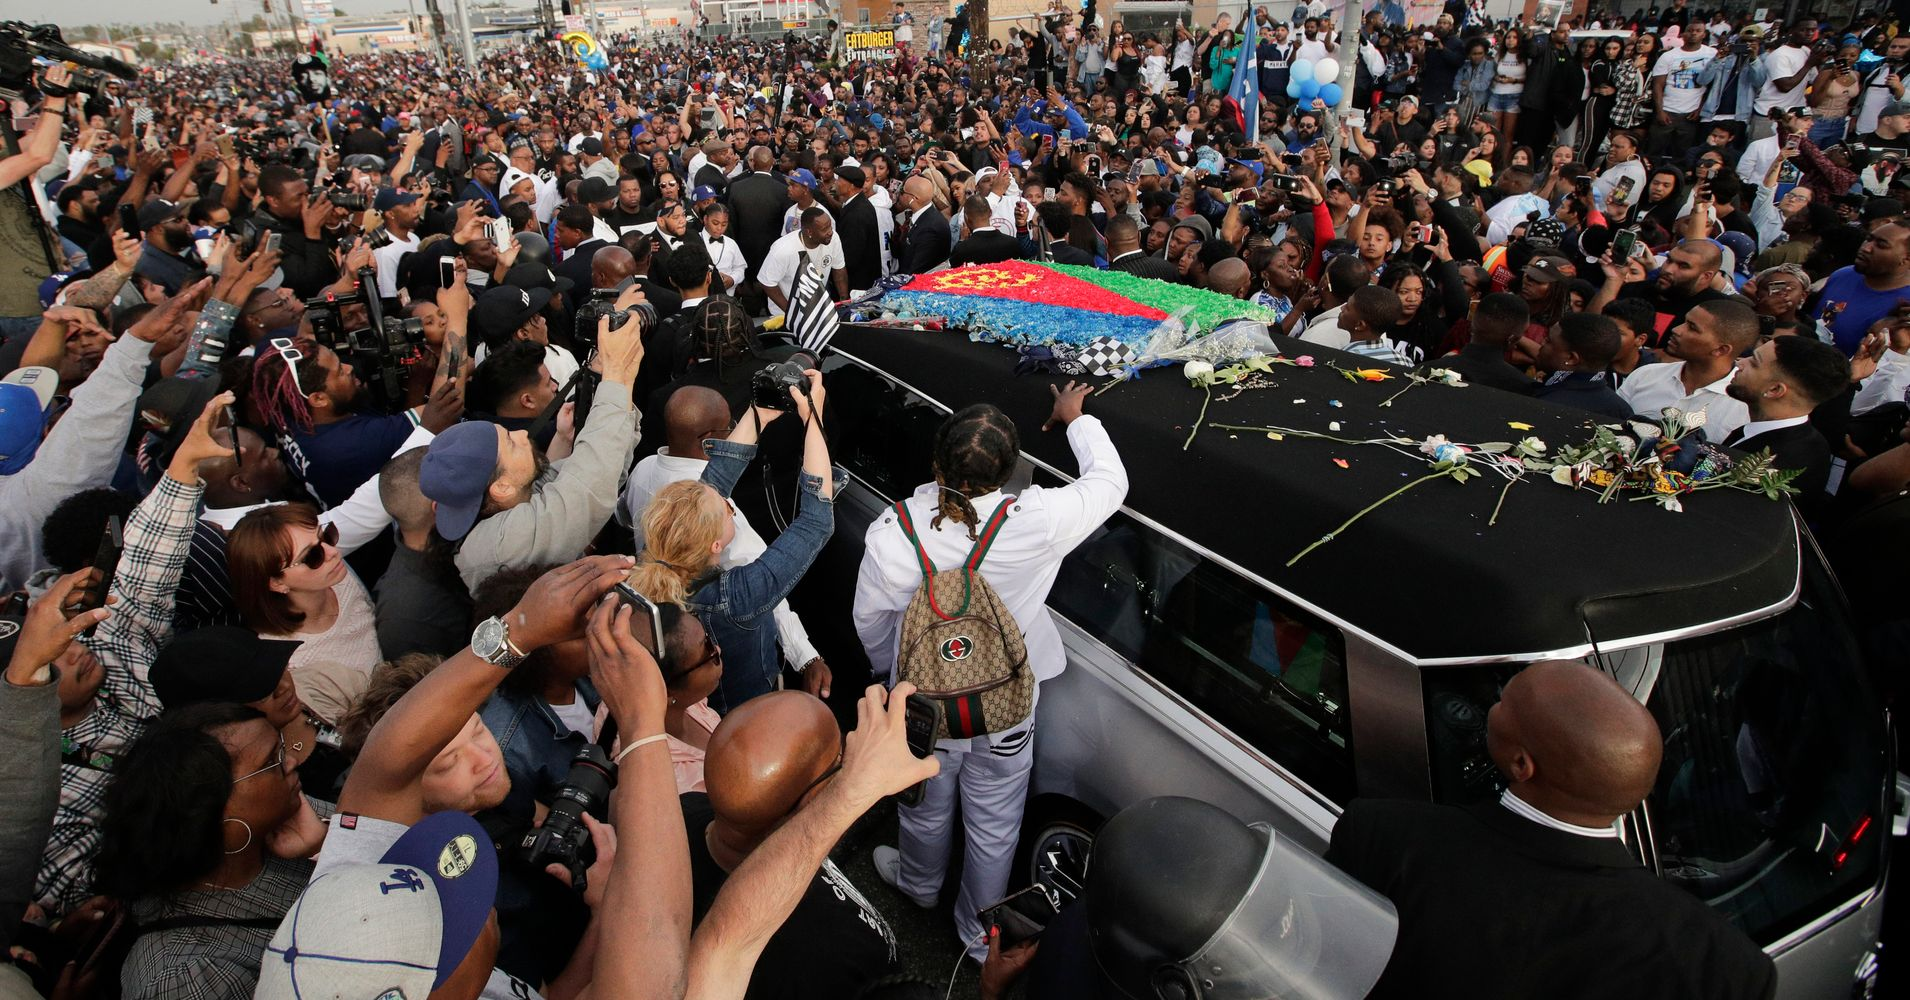 1 Killed, 3 Injured In Drive-By Shooting At Crowd Gathered For Nipsey Hussle Memorial